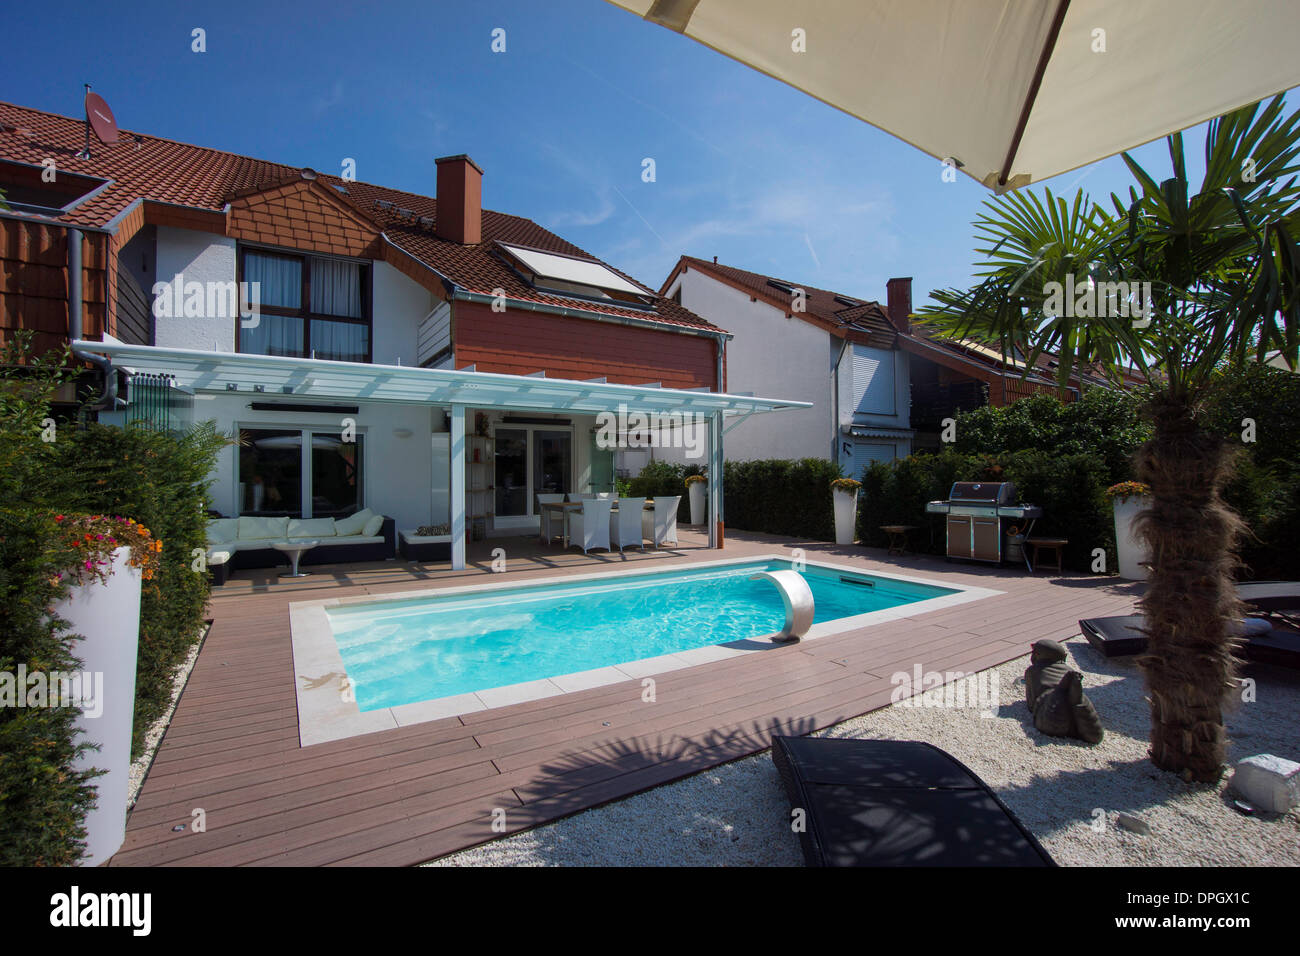 private terraced house with garden winter garden pool and